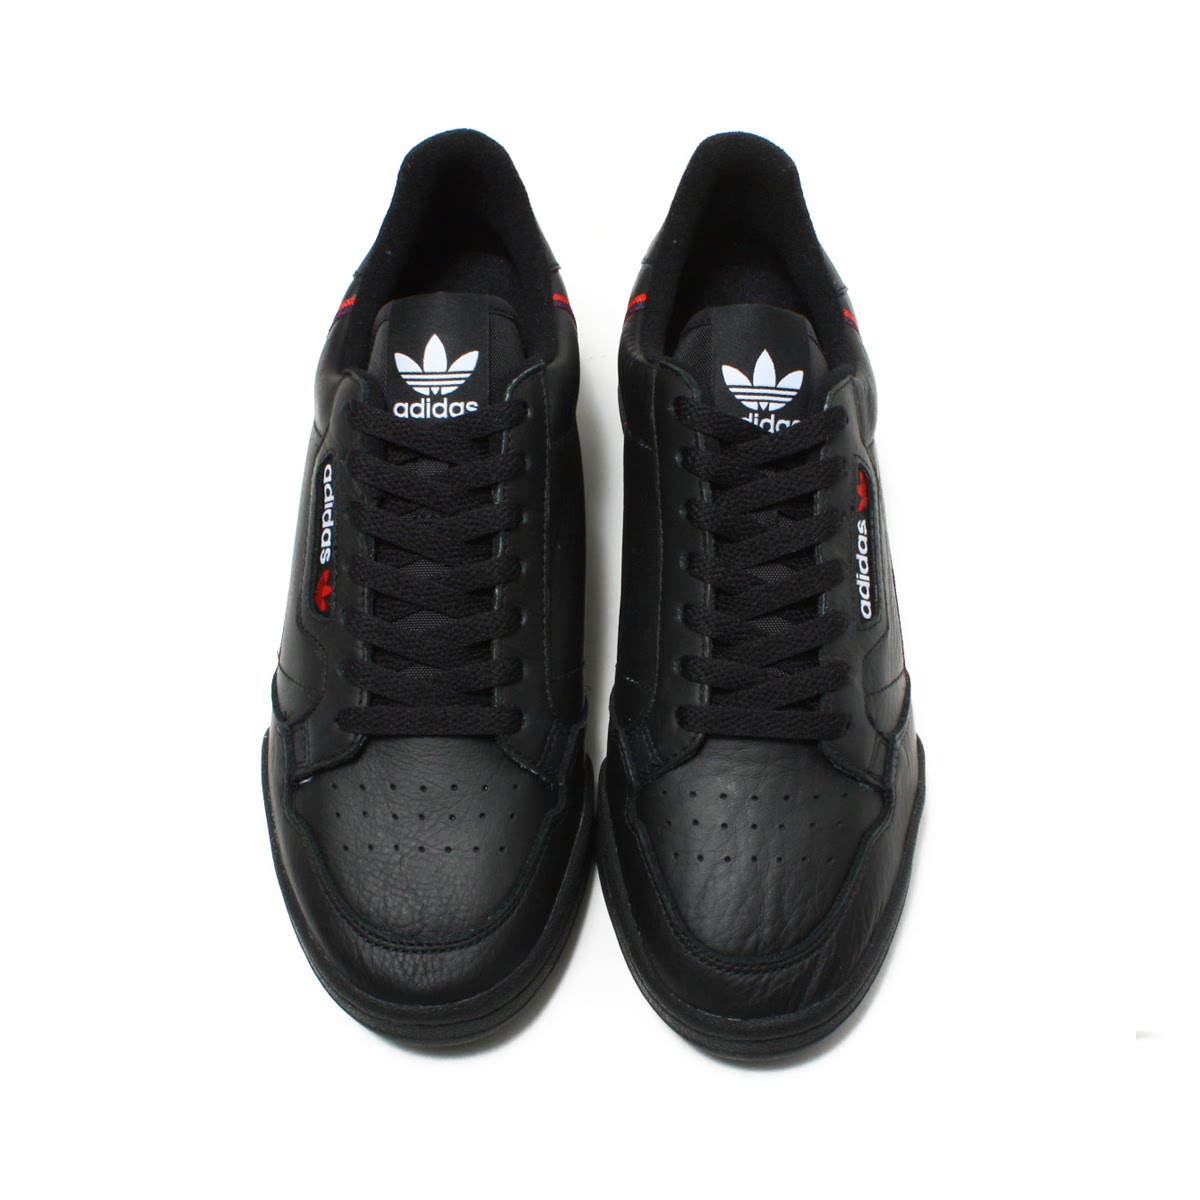 ba4dfea3124 adidas Originals CONTINENTAL 80 (Adidas originals Continental 80) CORE BLACK  SCARLET COLLEGIATE NAVY 18FW-I